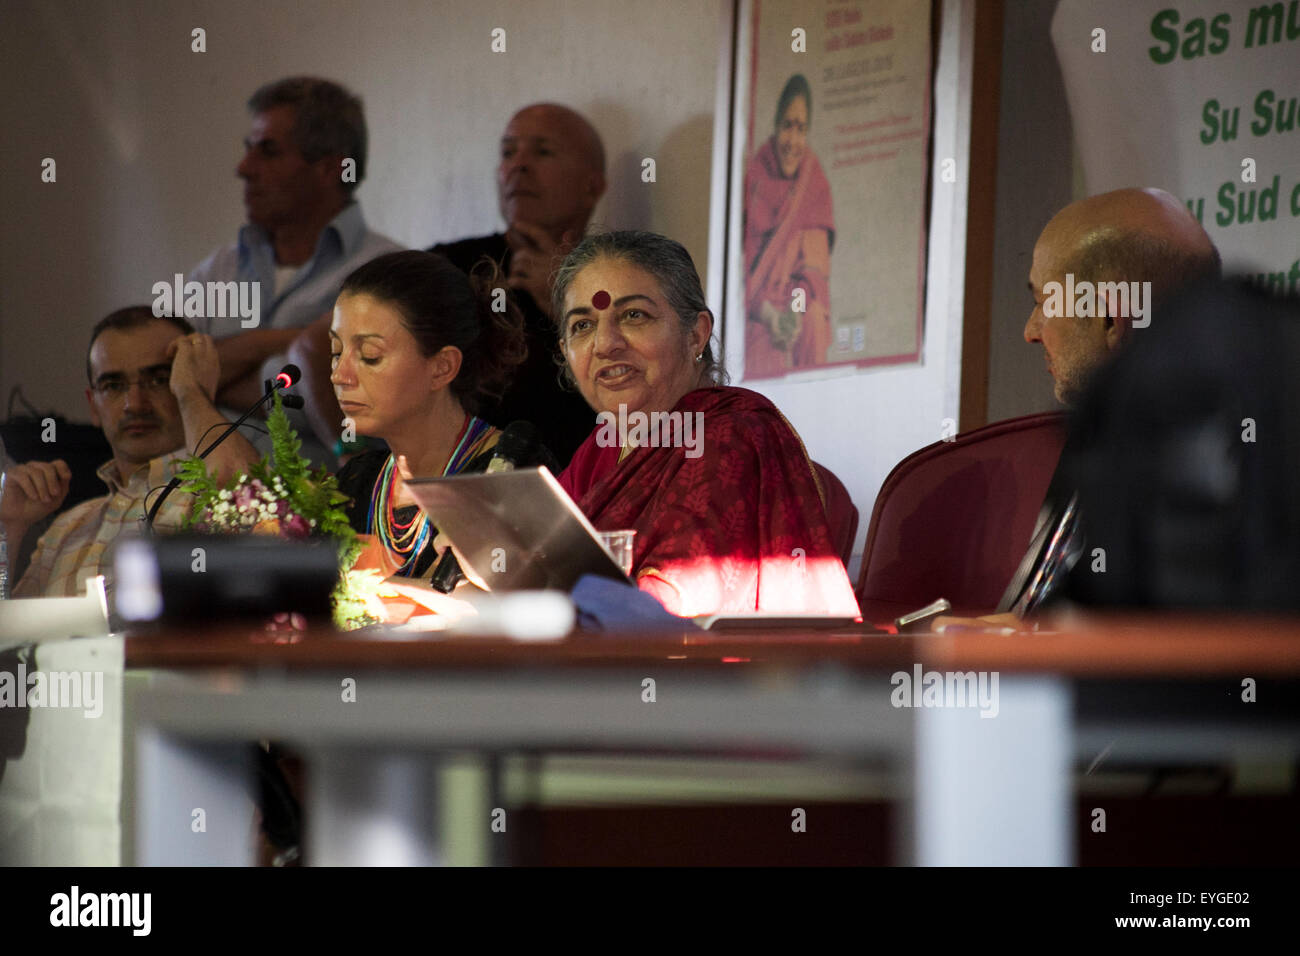 Sardinia, Italy. 28th July, 2015. Indian activist Vandana Shiva during a public speech organized by ISDE (Doctors - Stock Image